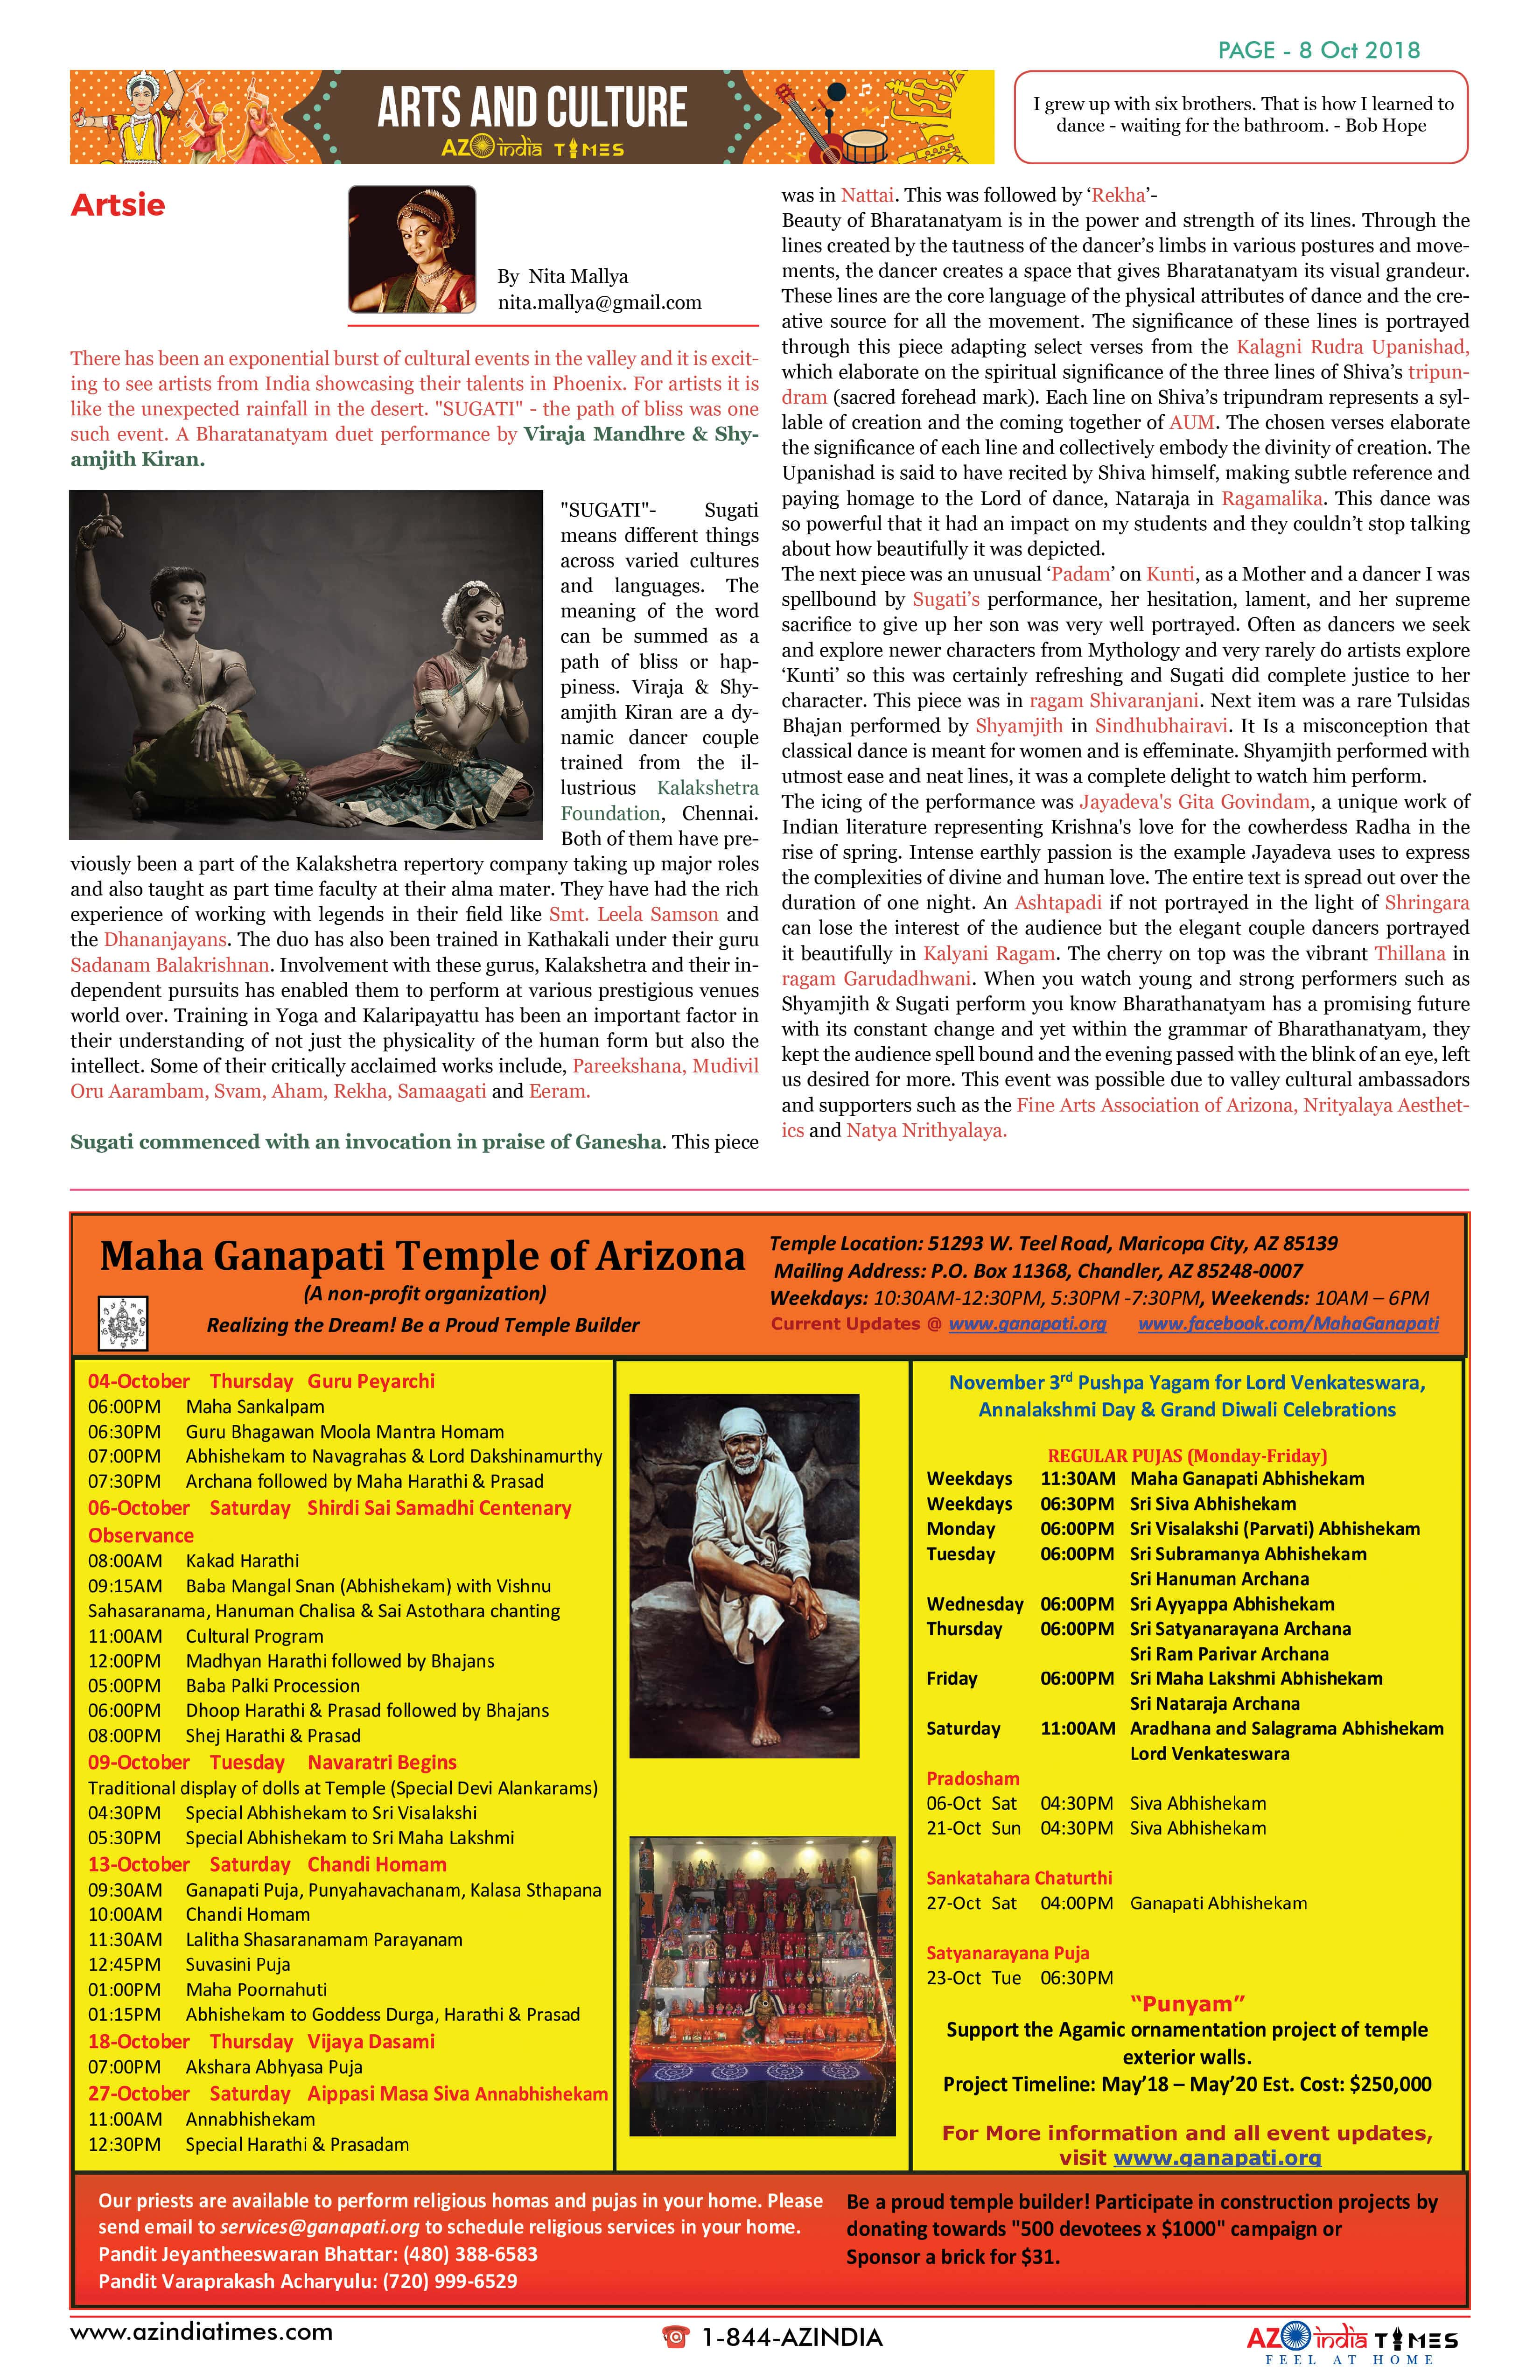 AZINDIA TIMES OCTOBER EDITION8